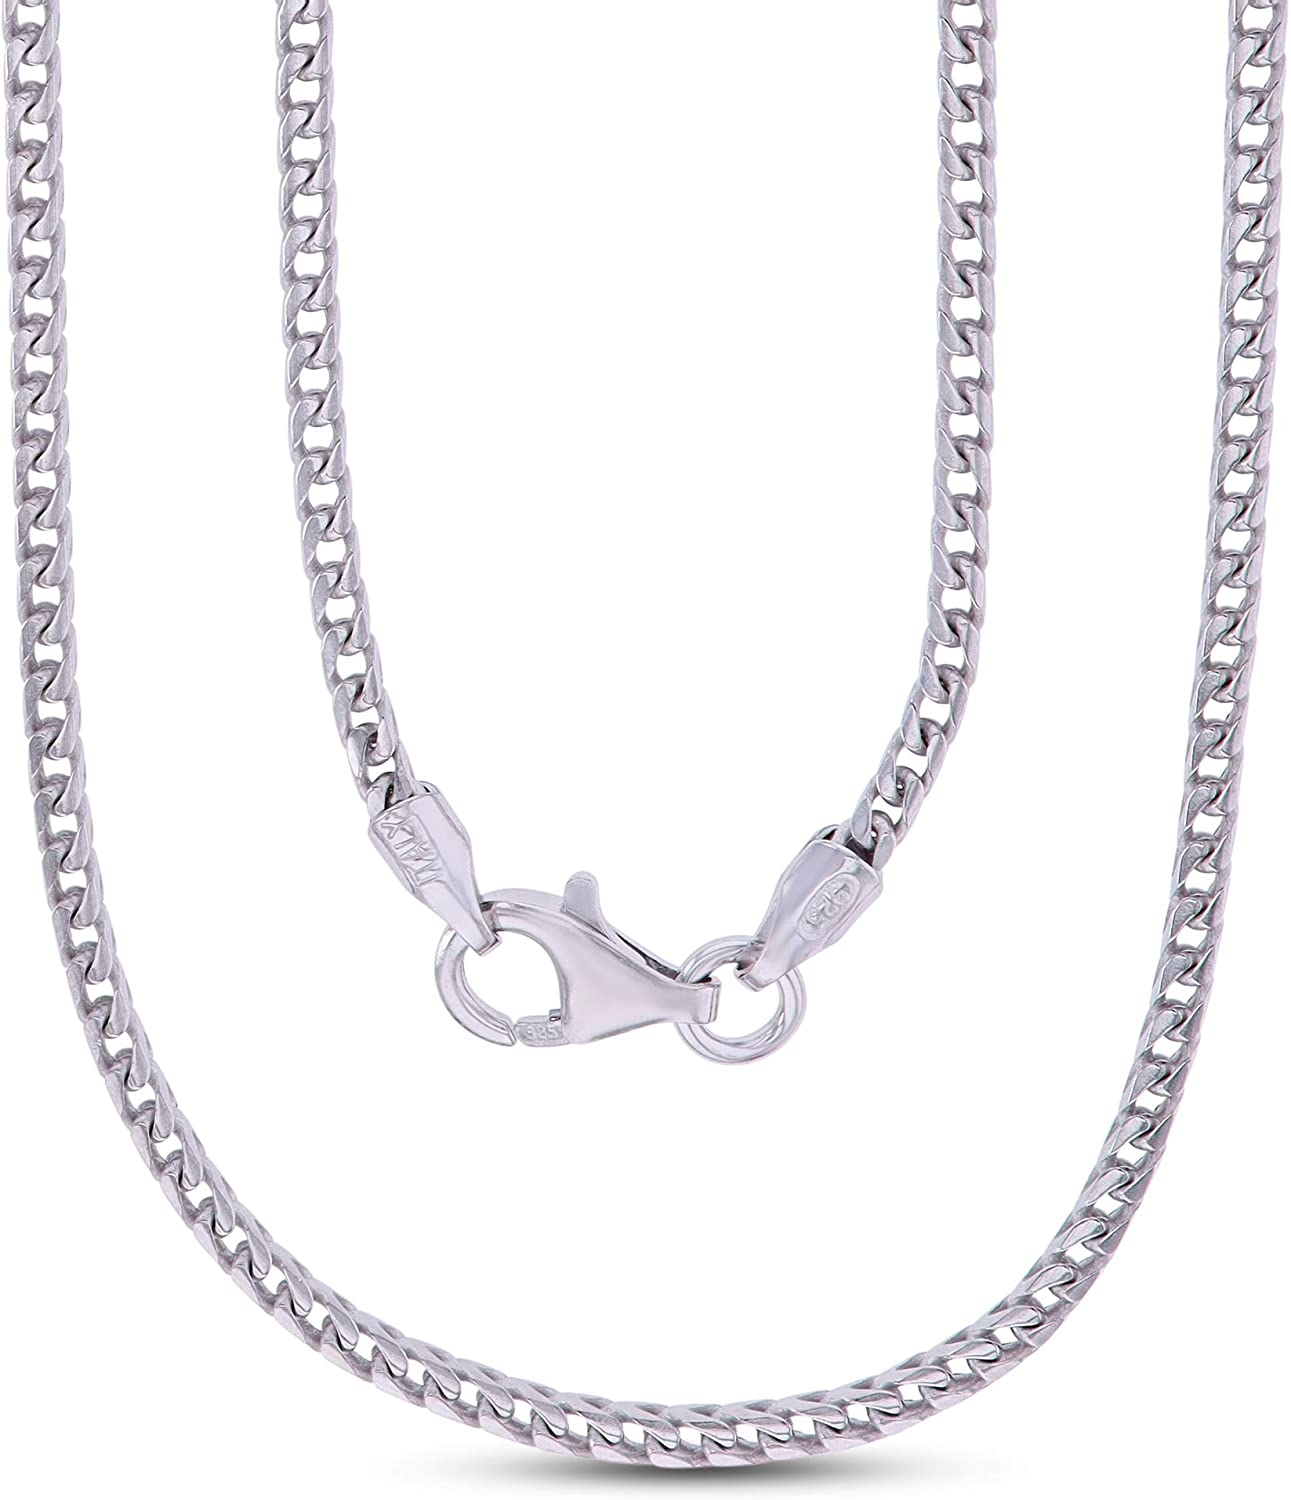 14K Gold Inexpensive or Rhodium Super special price Plated Sterling Chain Franco Men For Silver